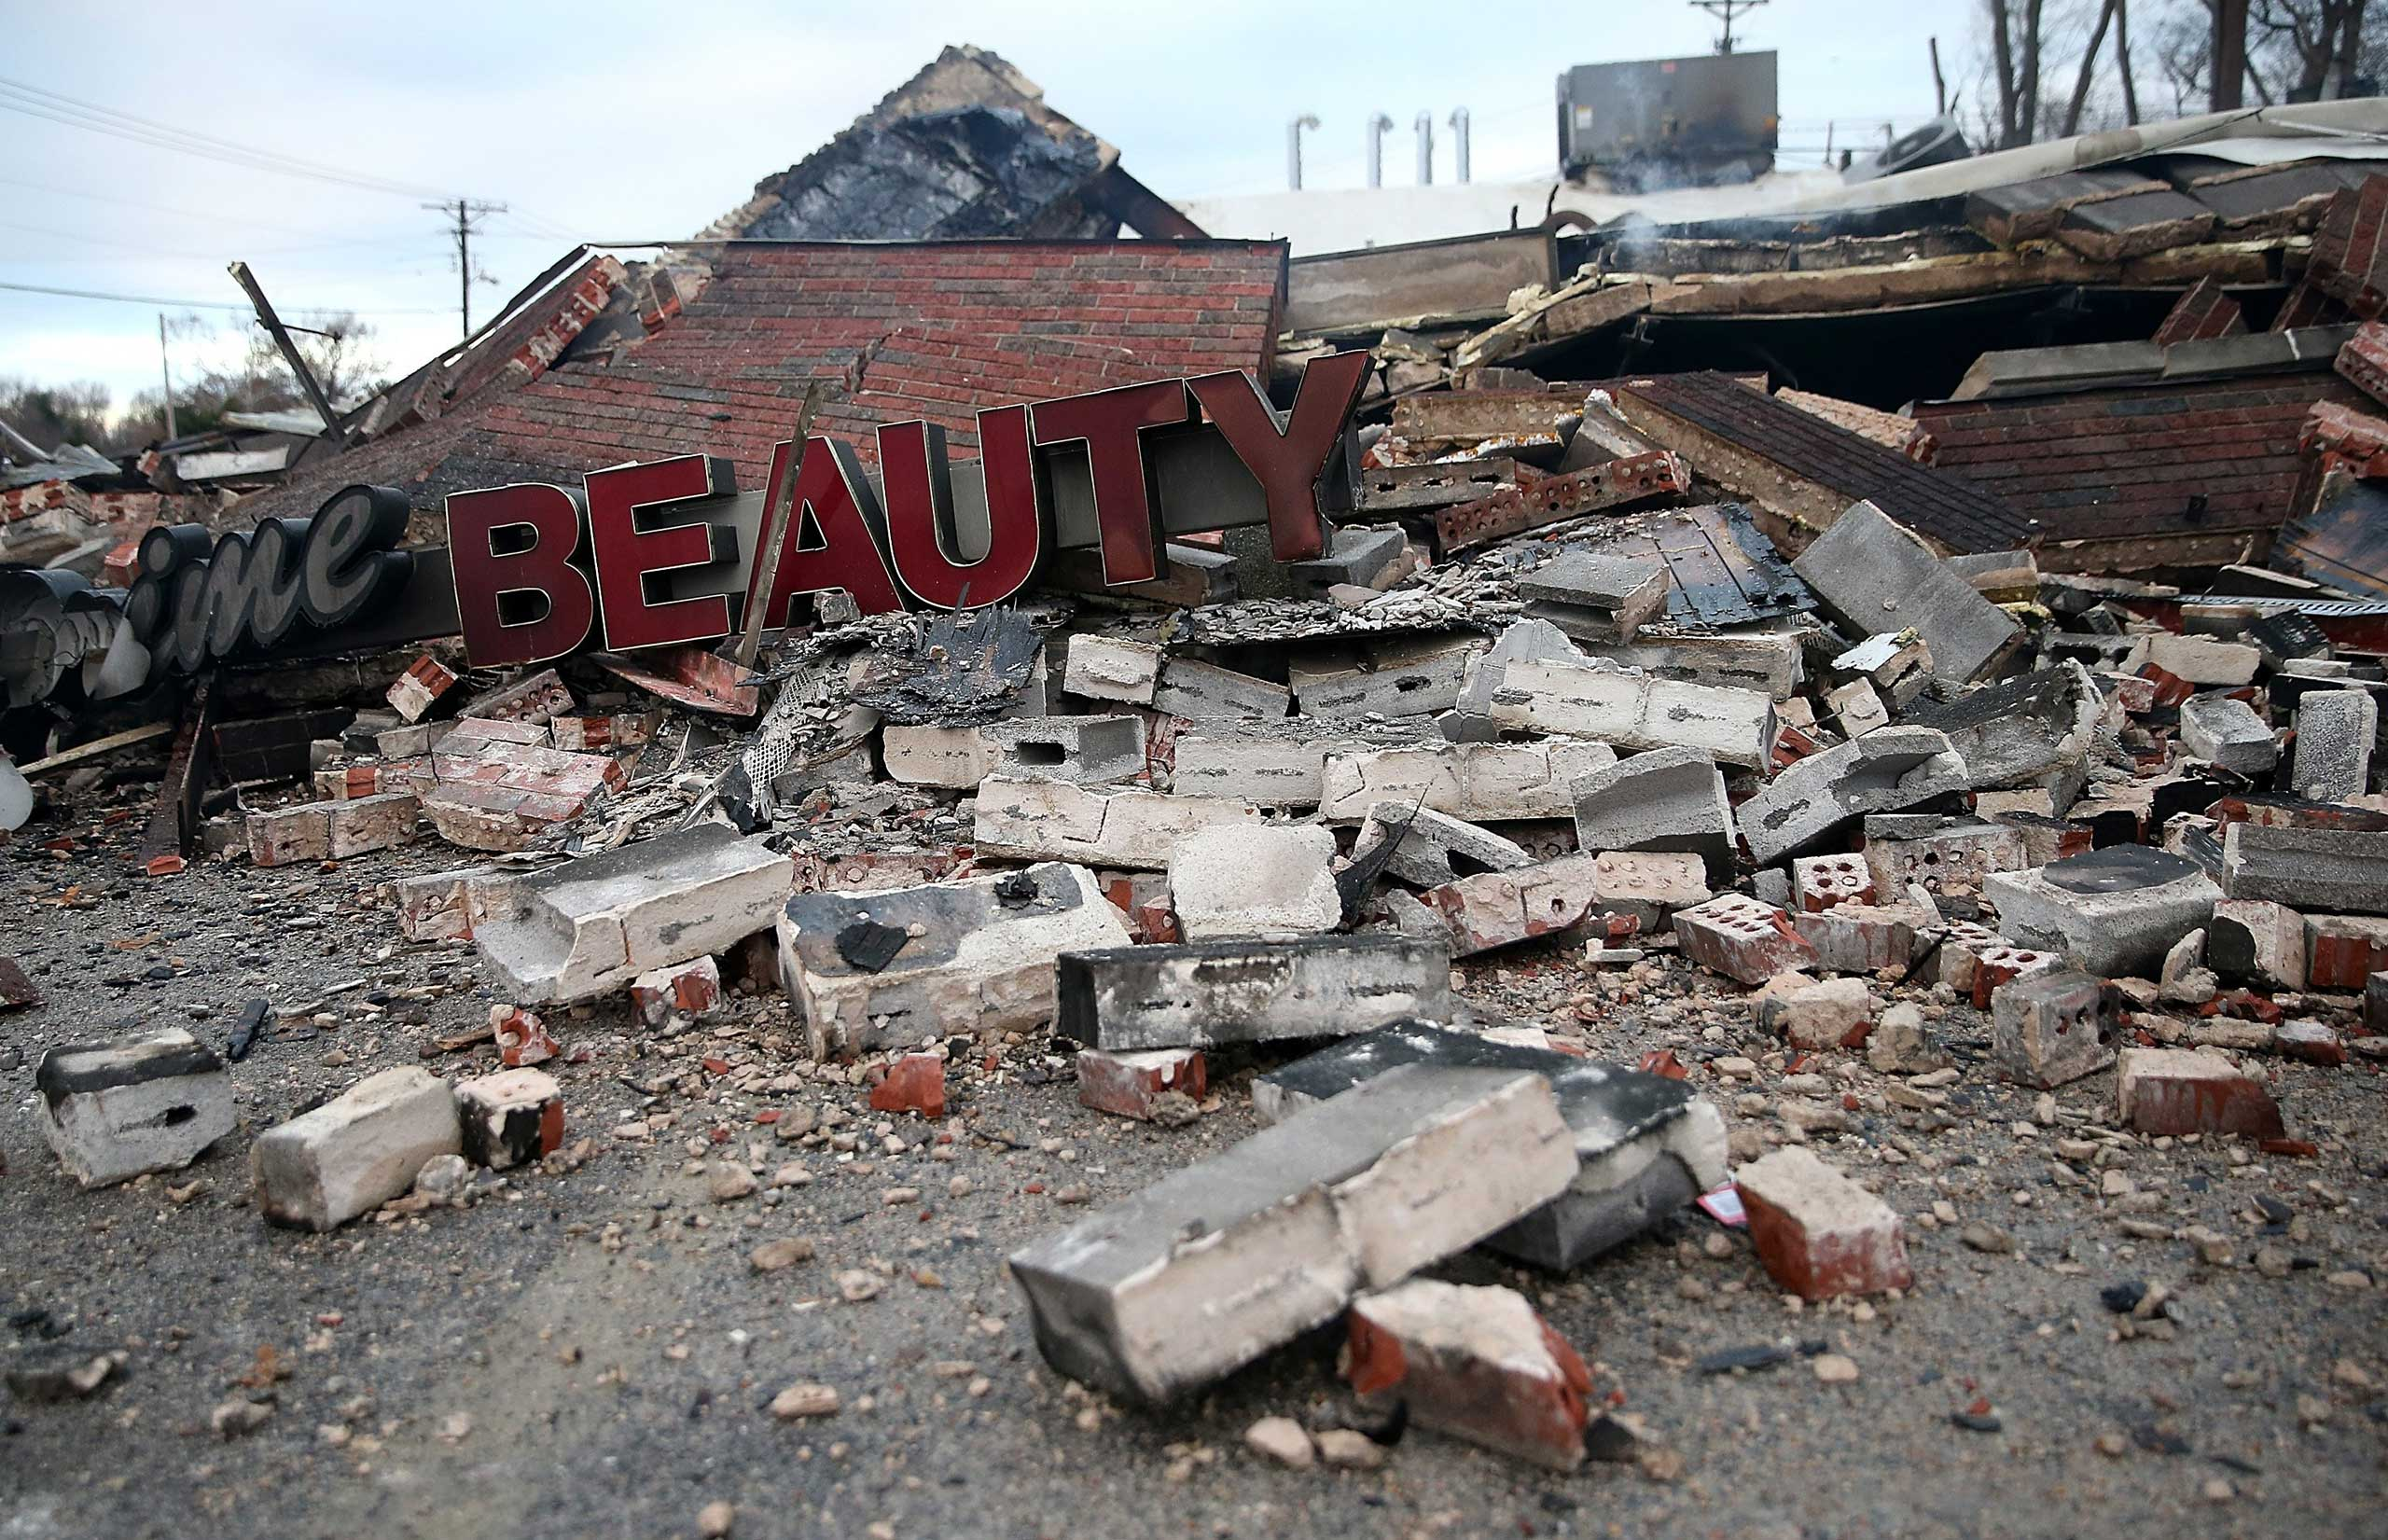 A sign sits atop the rubble of a building that was damaged during a demonstration in Dellwood, Mo. on Nov. 25, 2014.